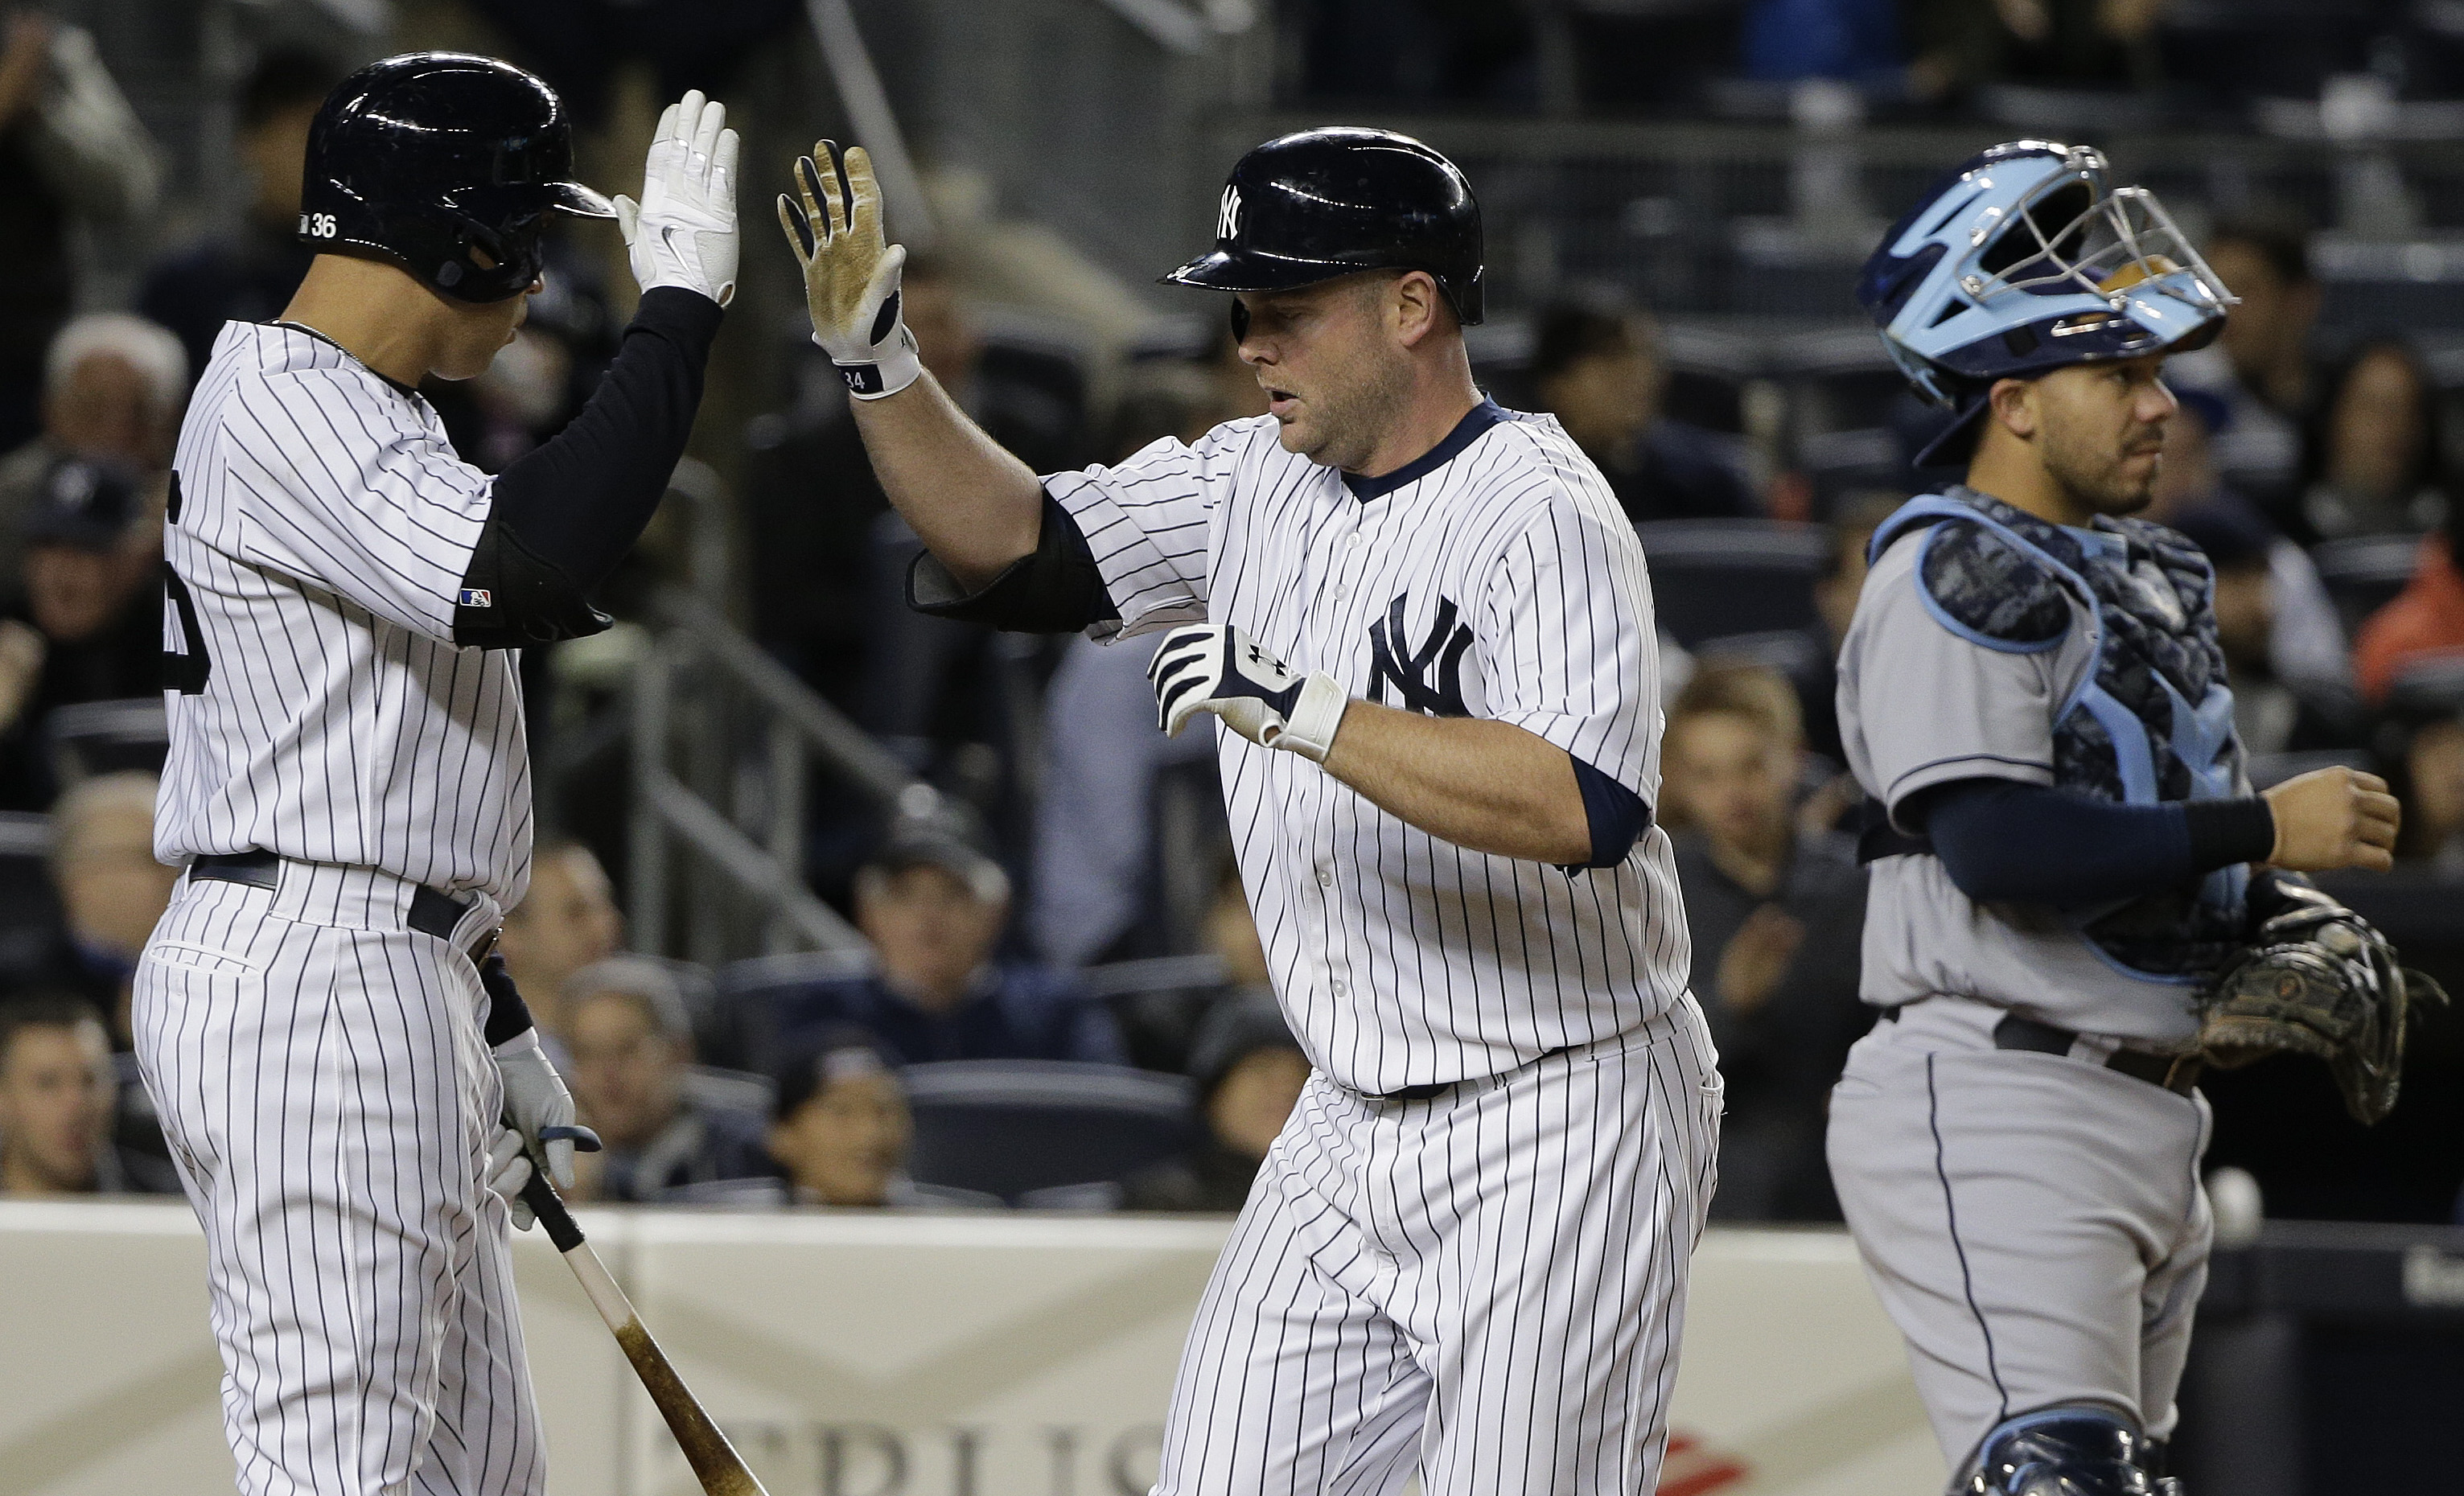 New York Yankees Brian McCann, right, is greeted by designated hitter Carlos Beltran  after hitting a solo home run against the Tampa Bay Rays in the sixth inning of a baseball game, Monday, April 27, 2015, in New York. (AP Photo/Julie Jacobson)